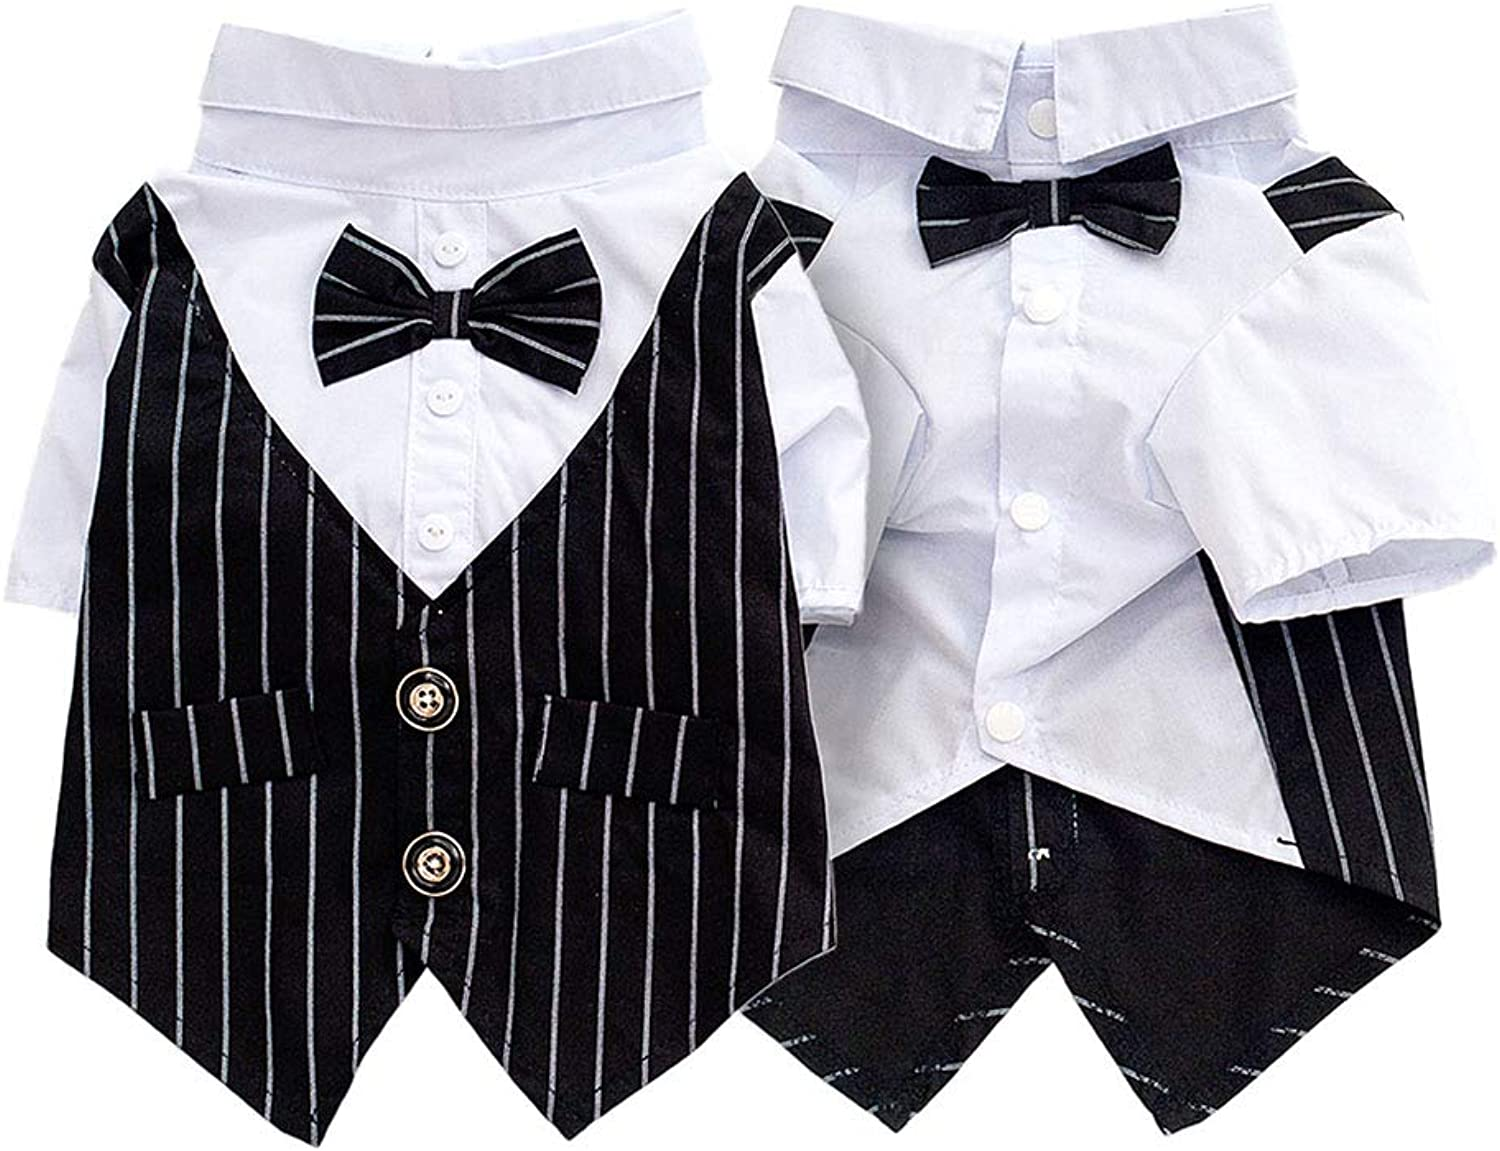 Pet Fashion Couture Dog Tuxedo Wedding Party Suit Gentleman Dog Attire with Bowite,Black,M